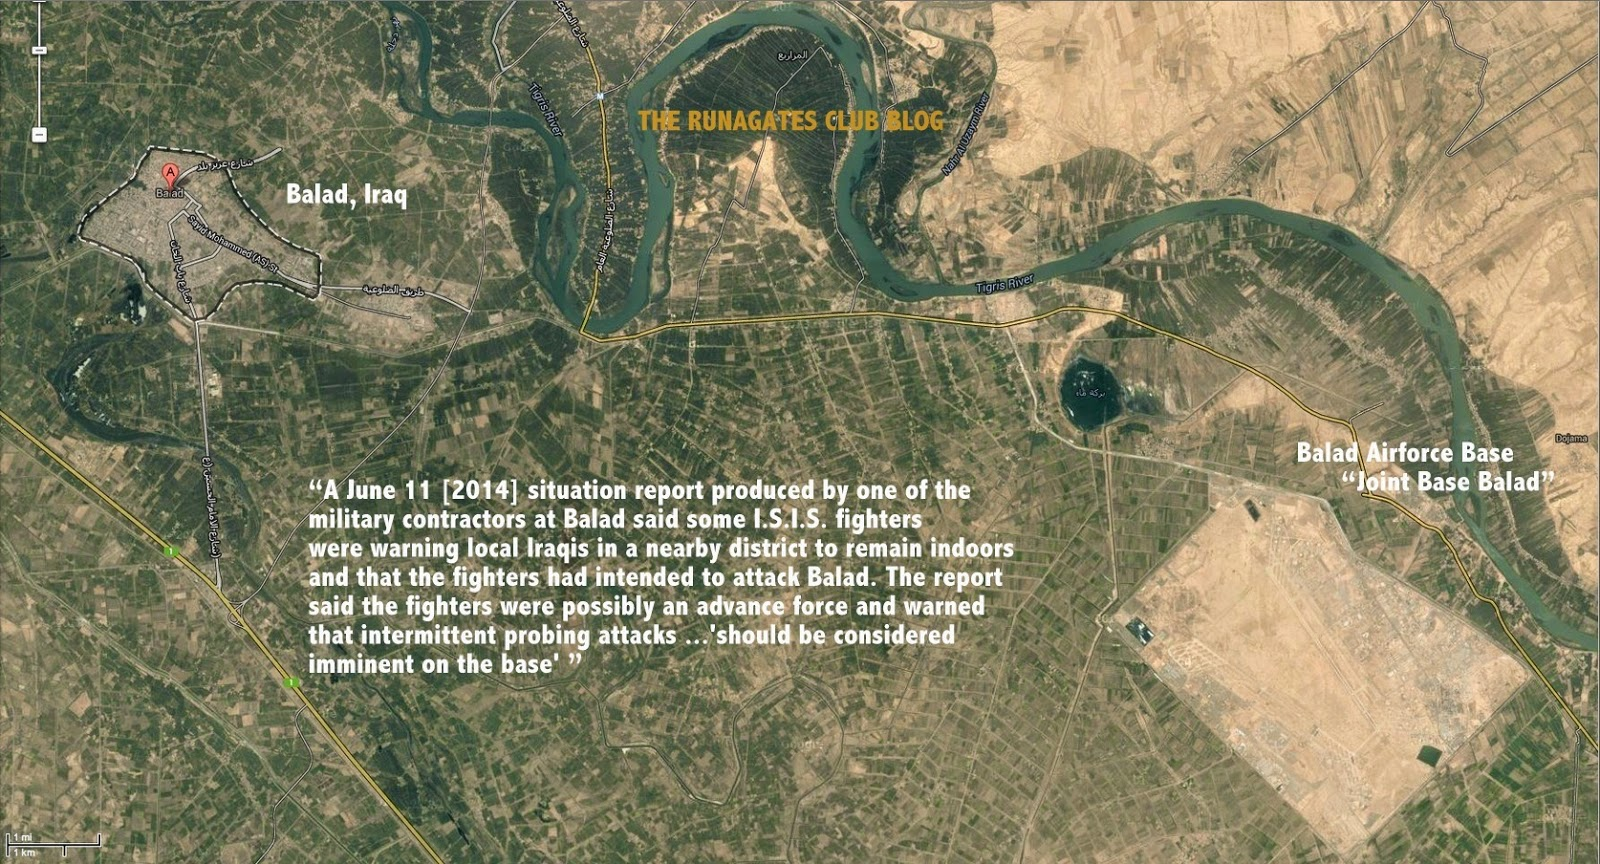 Initial ISIS  attacks on Balad  Airforce Base, June 2014  - situation map